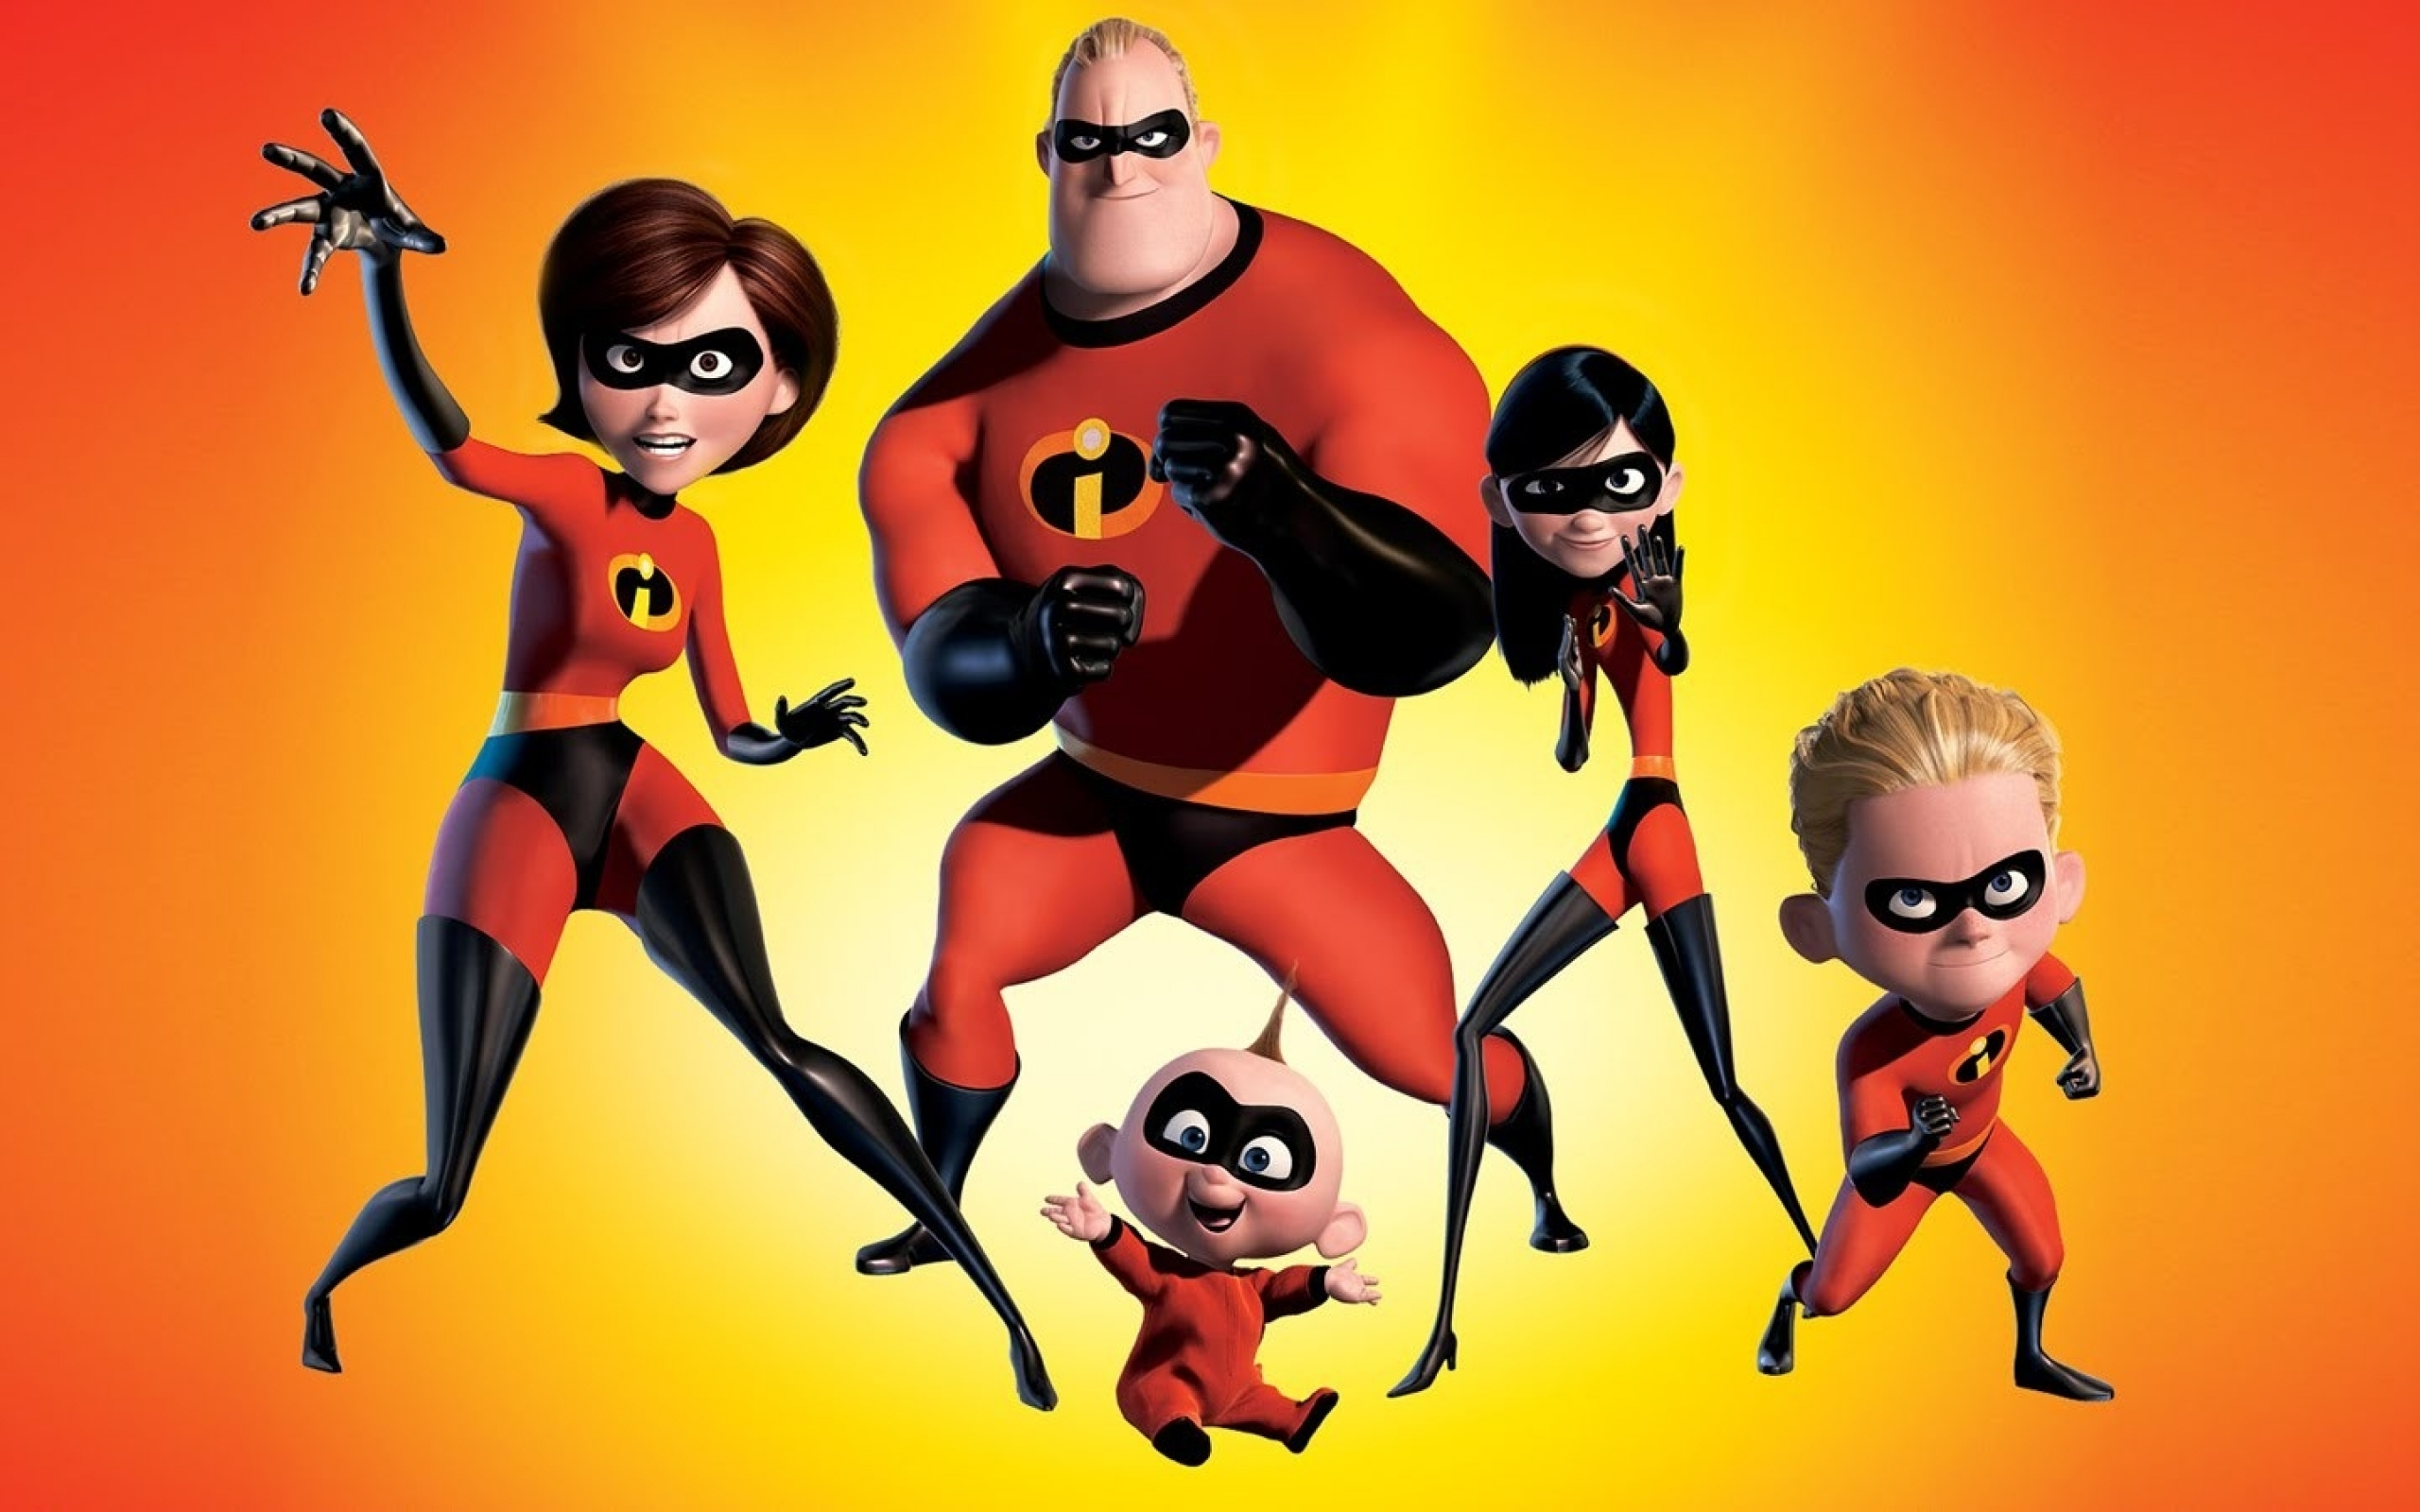 Revisiting Pixar's The Incredibles and it's Awesomeness